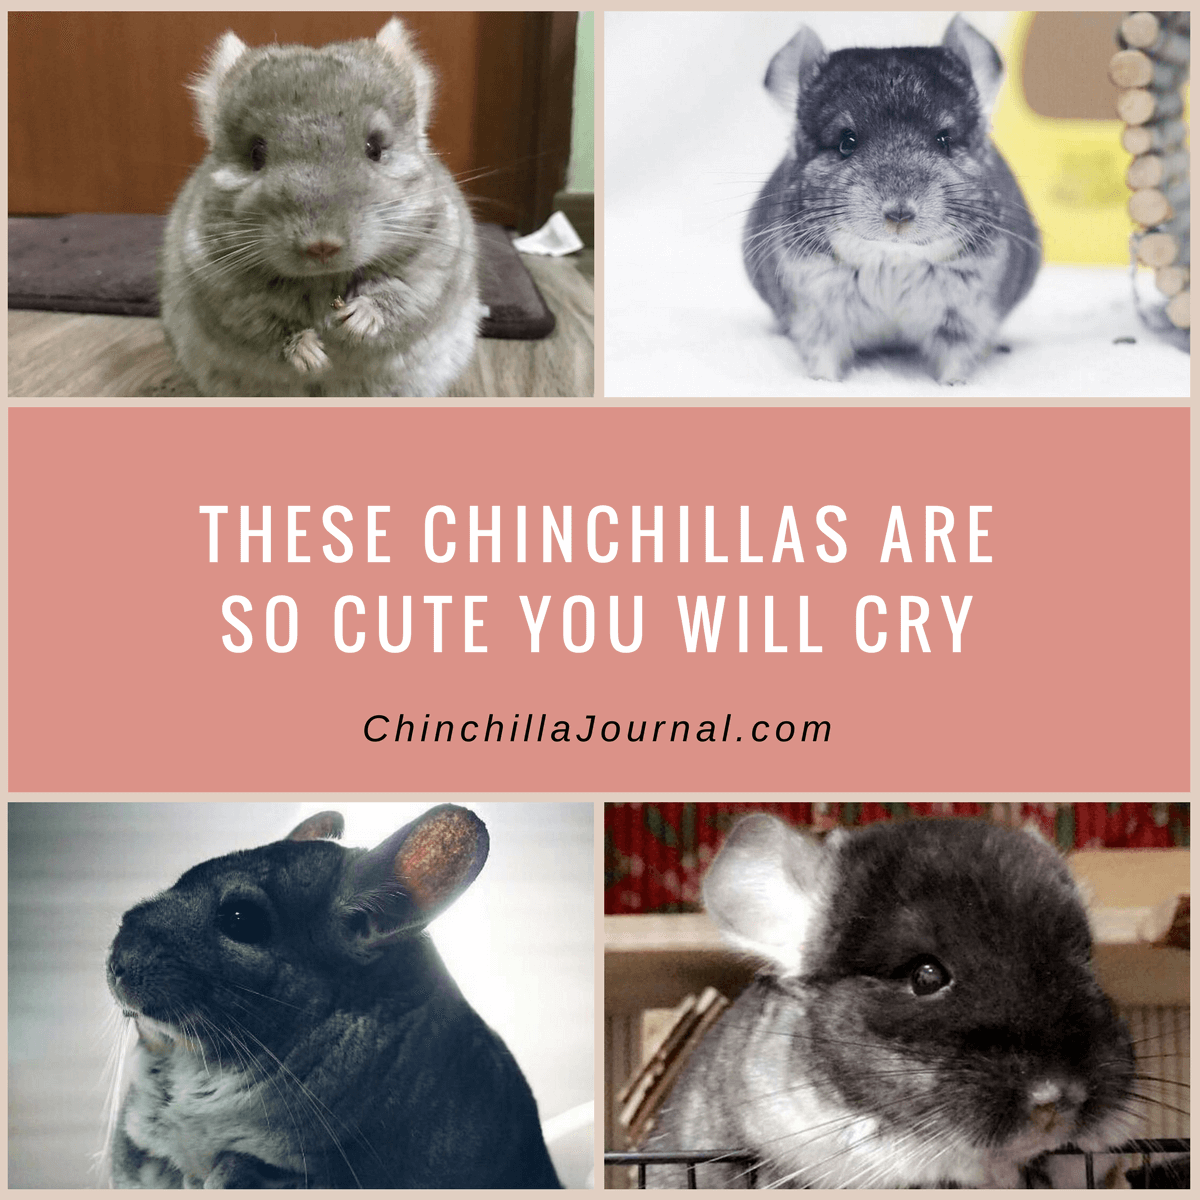 These Chinchillas Are So Cute You Will Cry